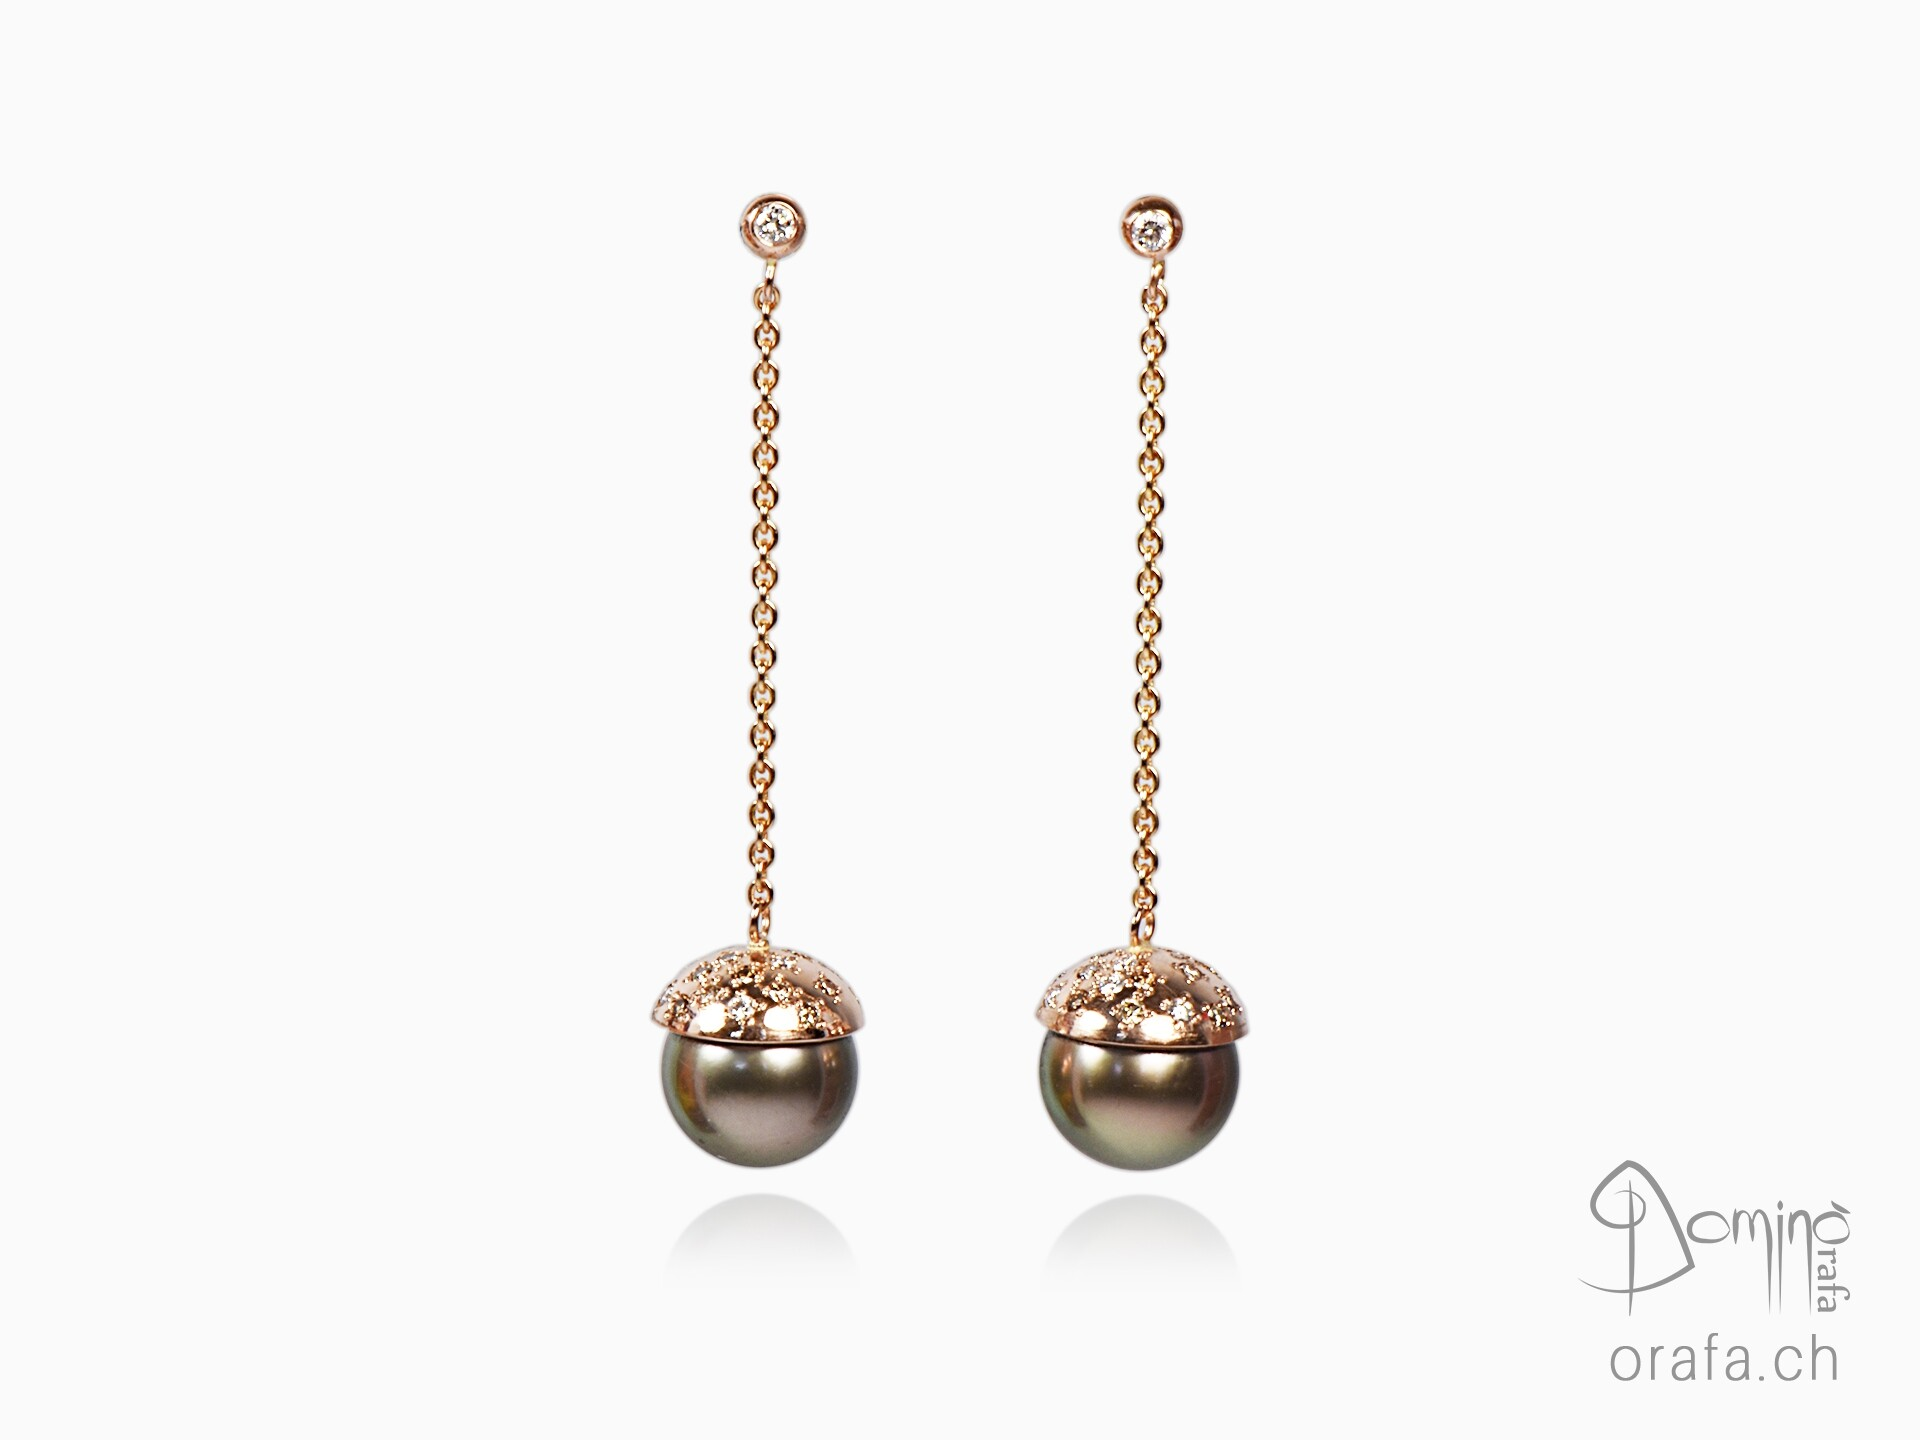 Red gold earrings with tahitian pearls and diamonds